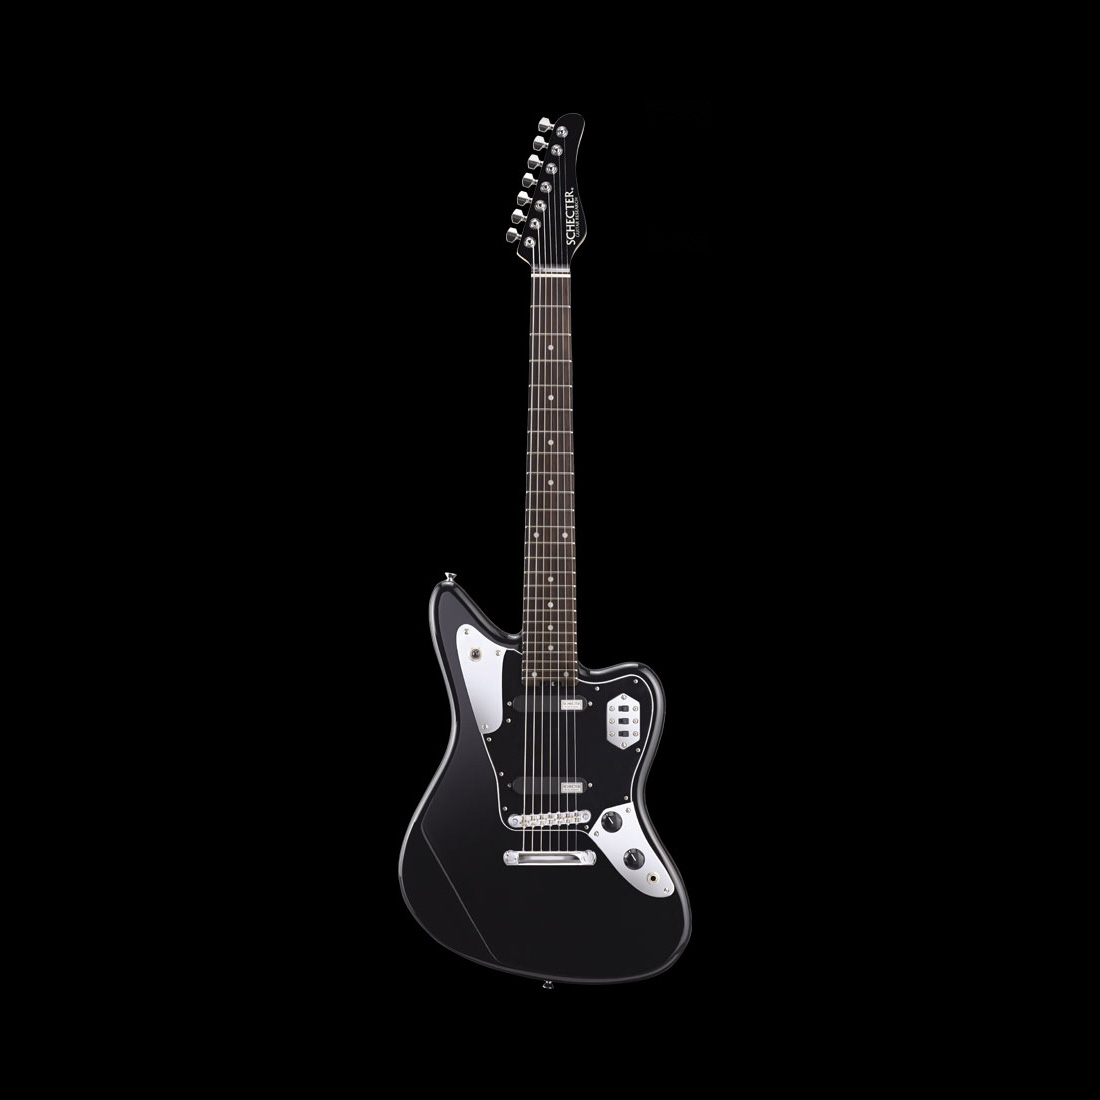 Schecter / AR-07-R Black シェクター エレキギター 【お取り寄せ商品】